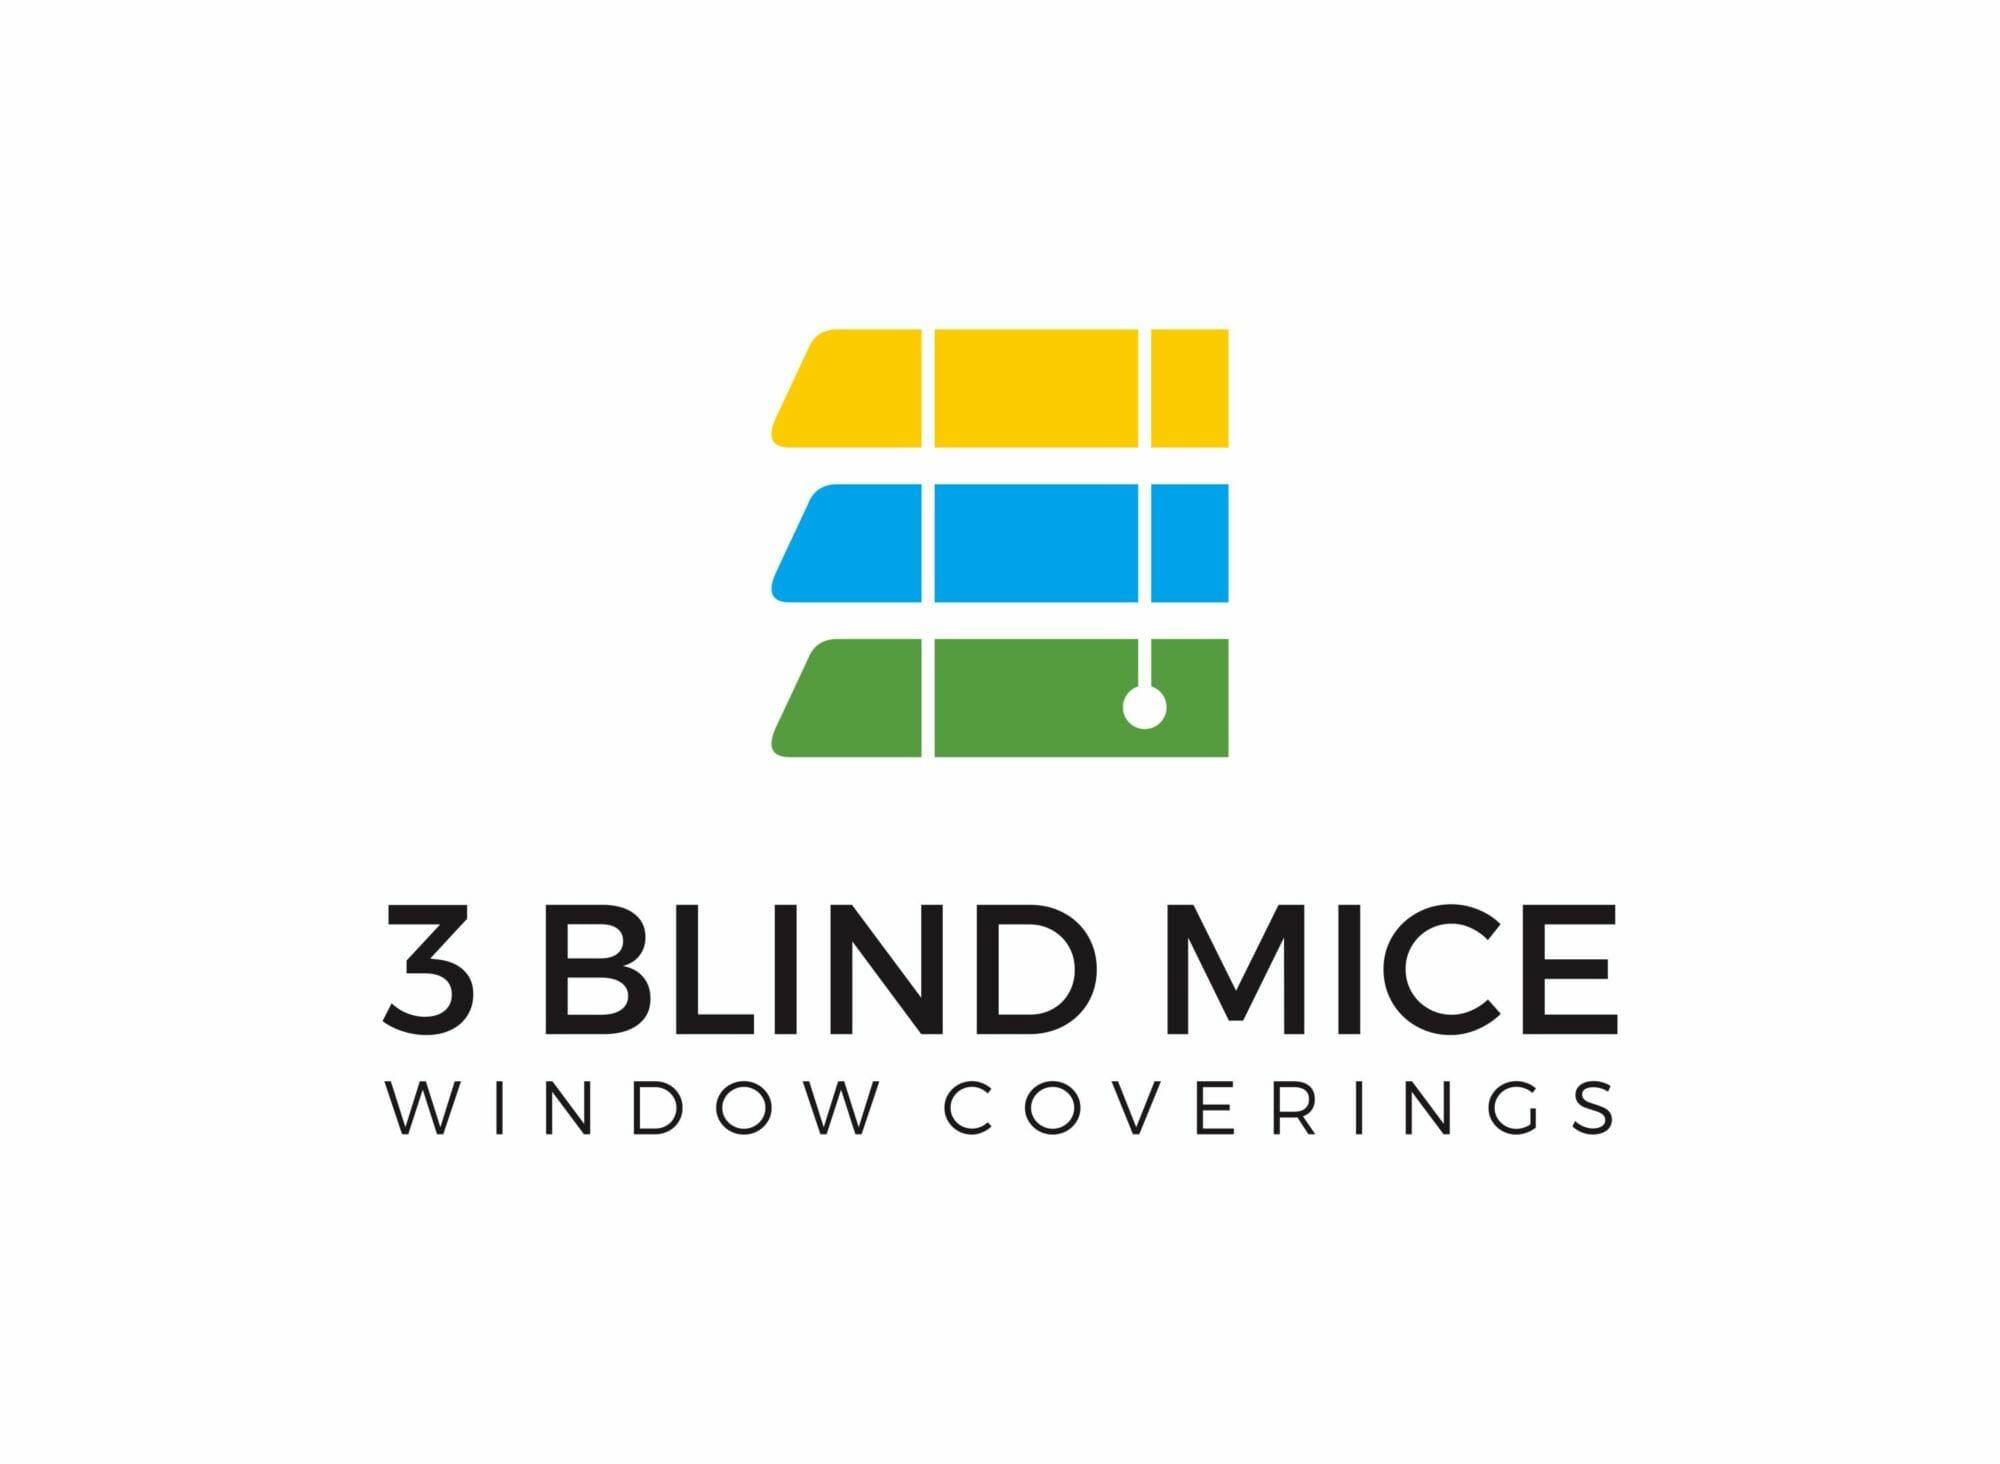 Michael Buonomo Author At 3 Blind Mice Window Coverings